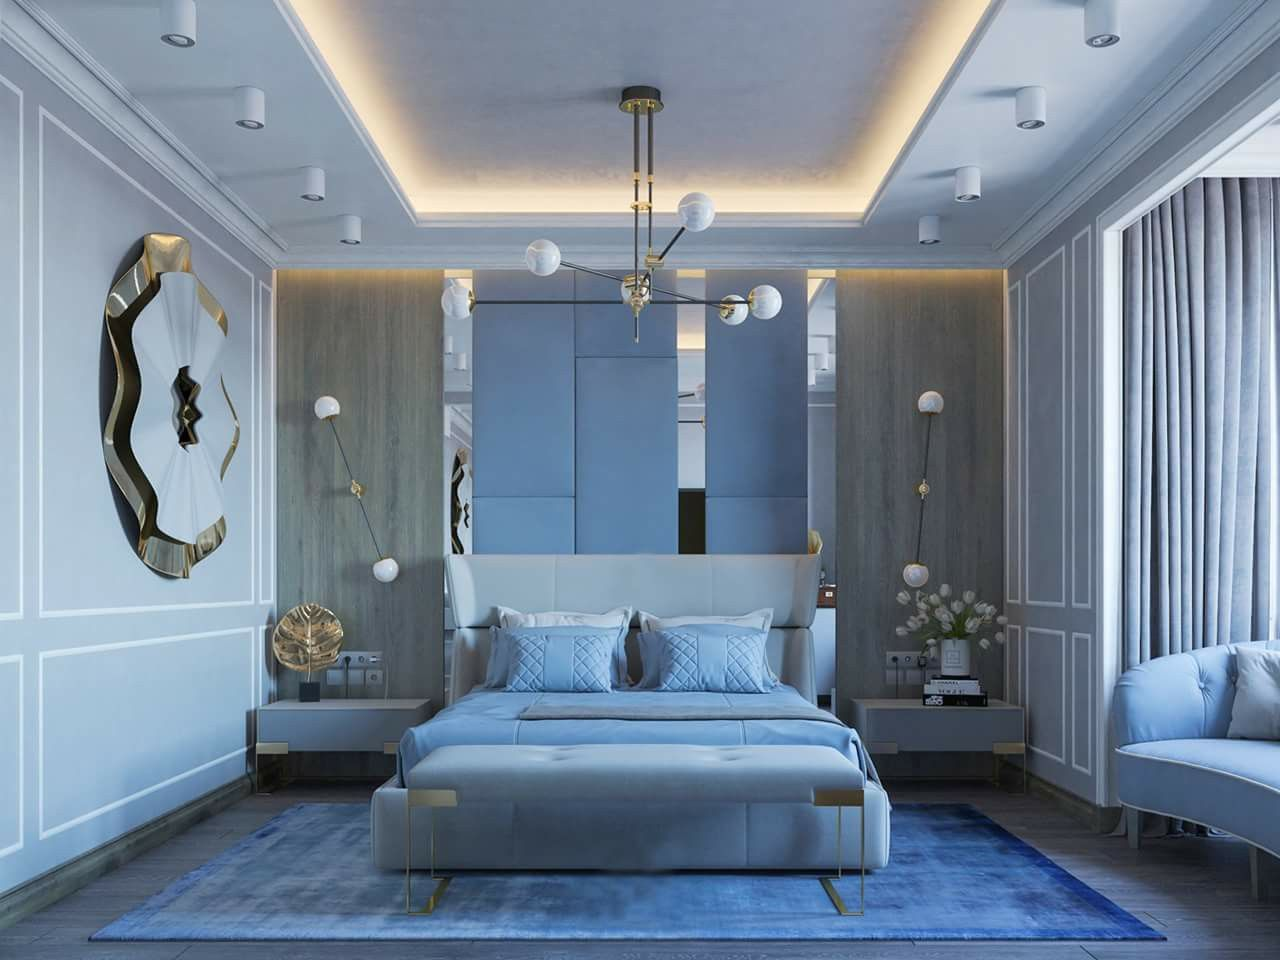 Pin by love for everything (VE) on bedroom ideas in 2018 | Pinterest ...